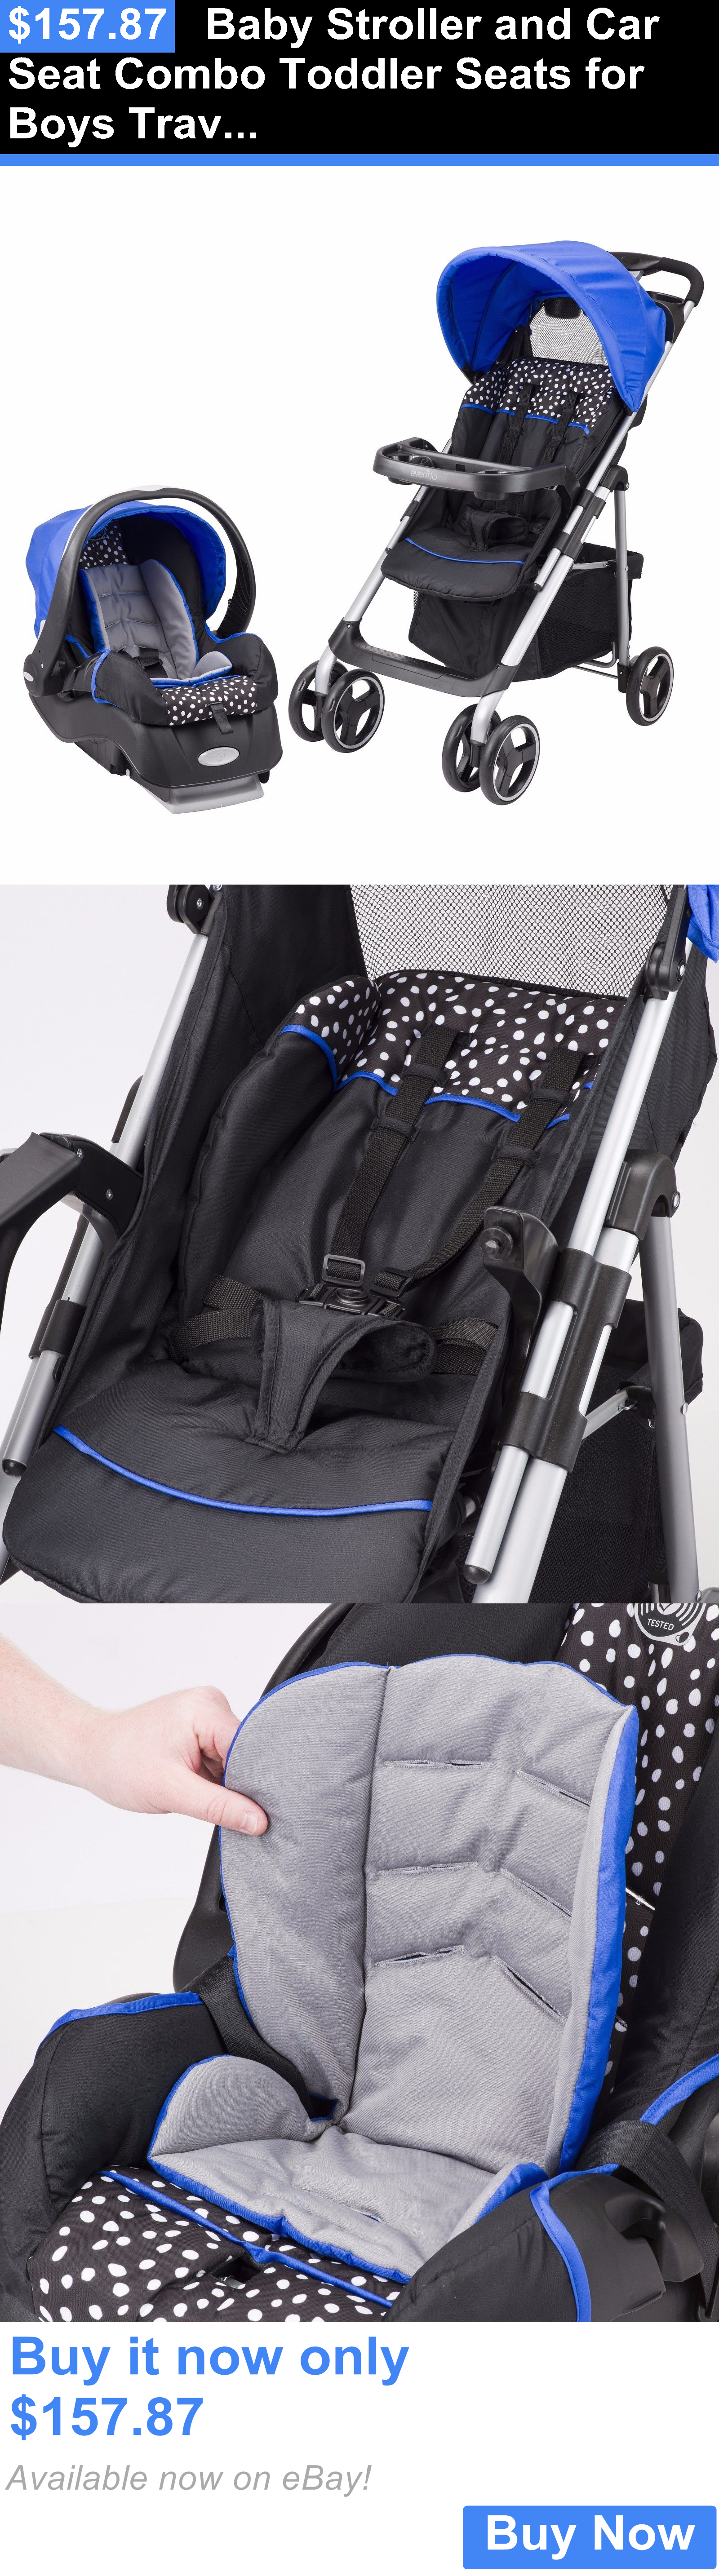 Baby Baby Stroller And Car Seat Combo Toddler Seats For